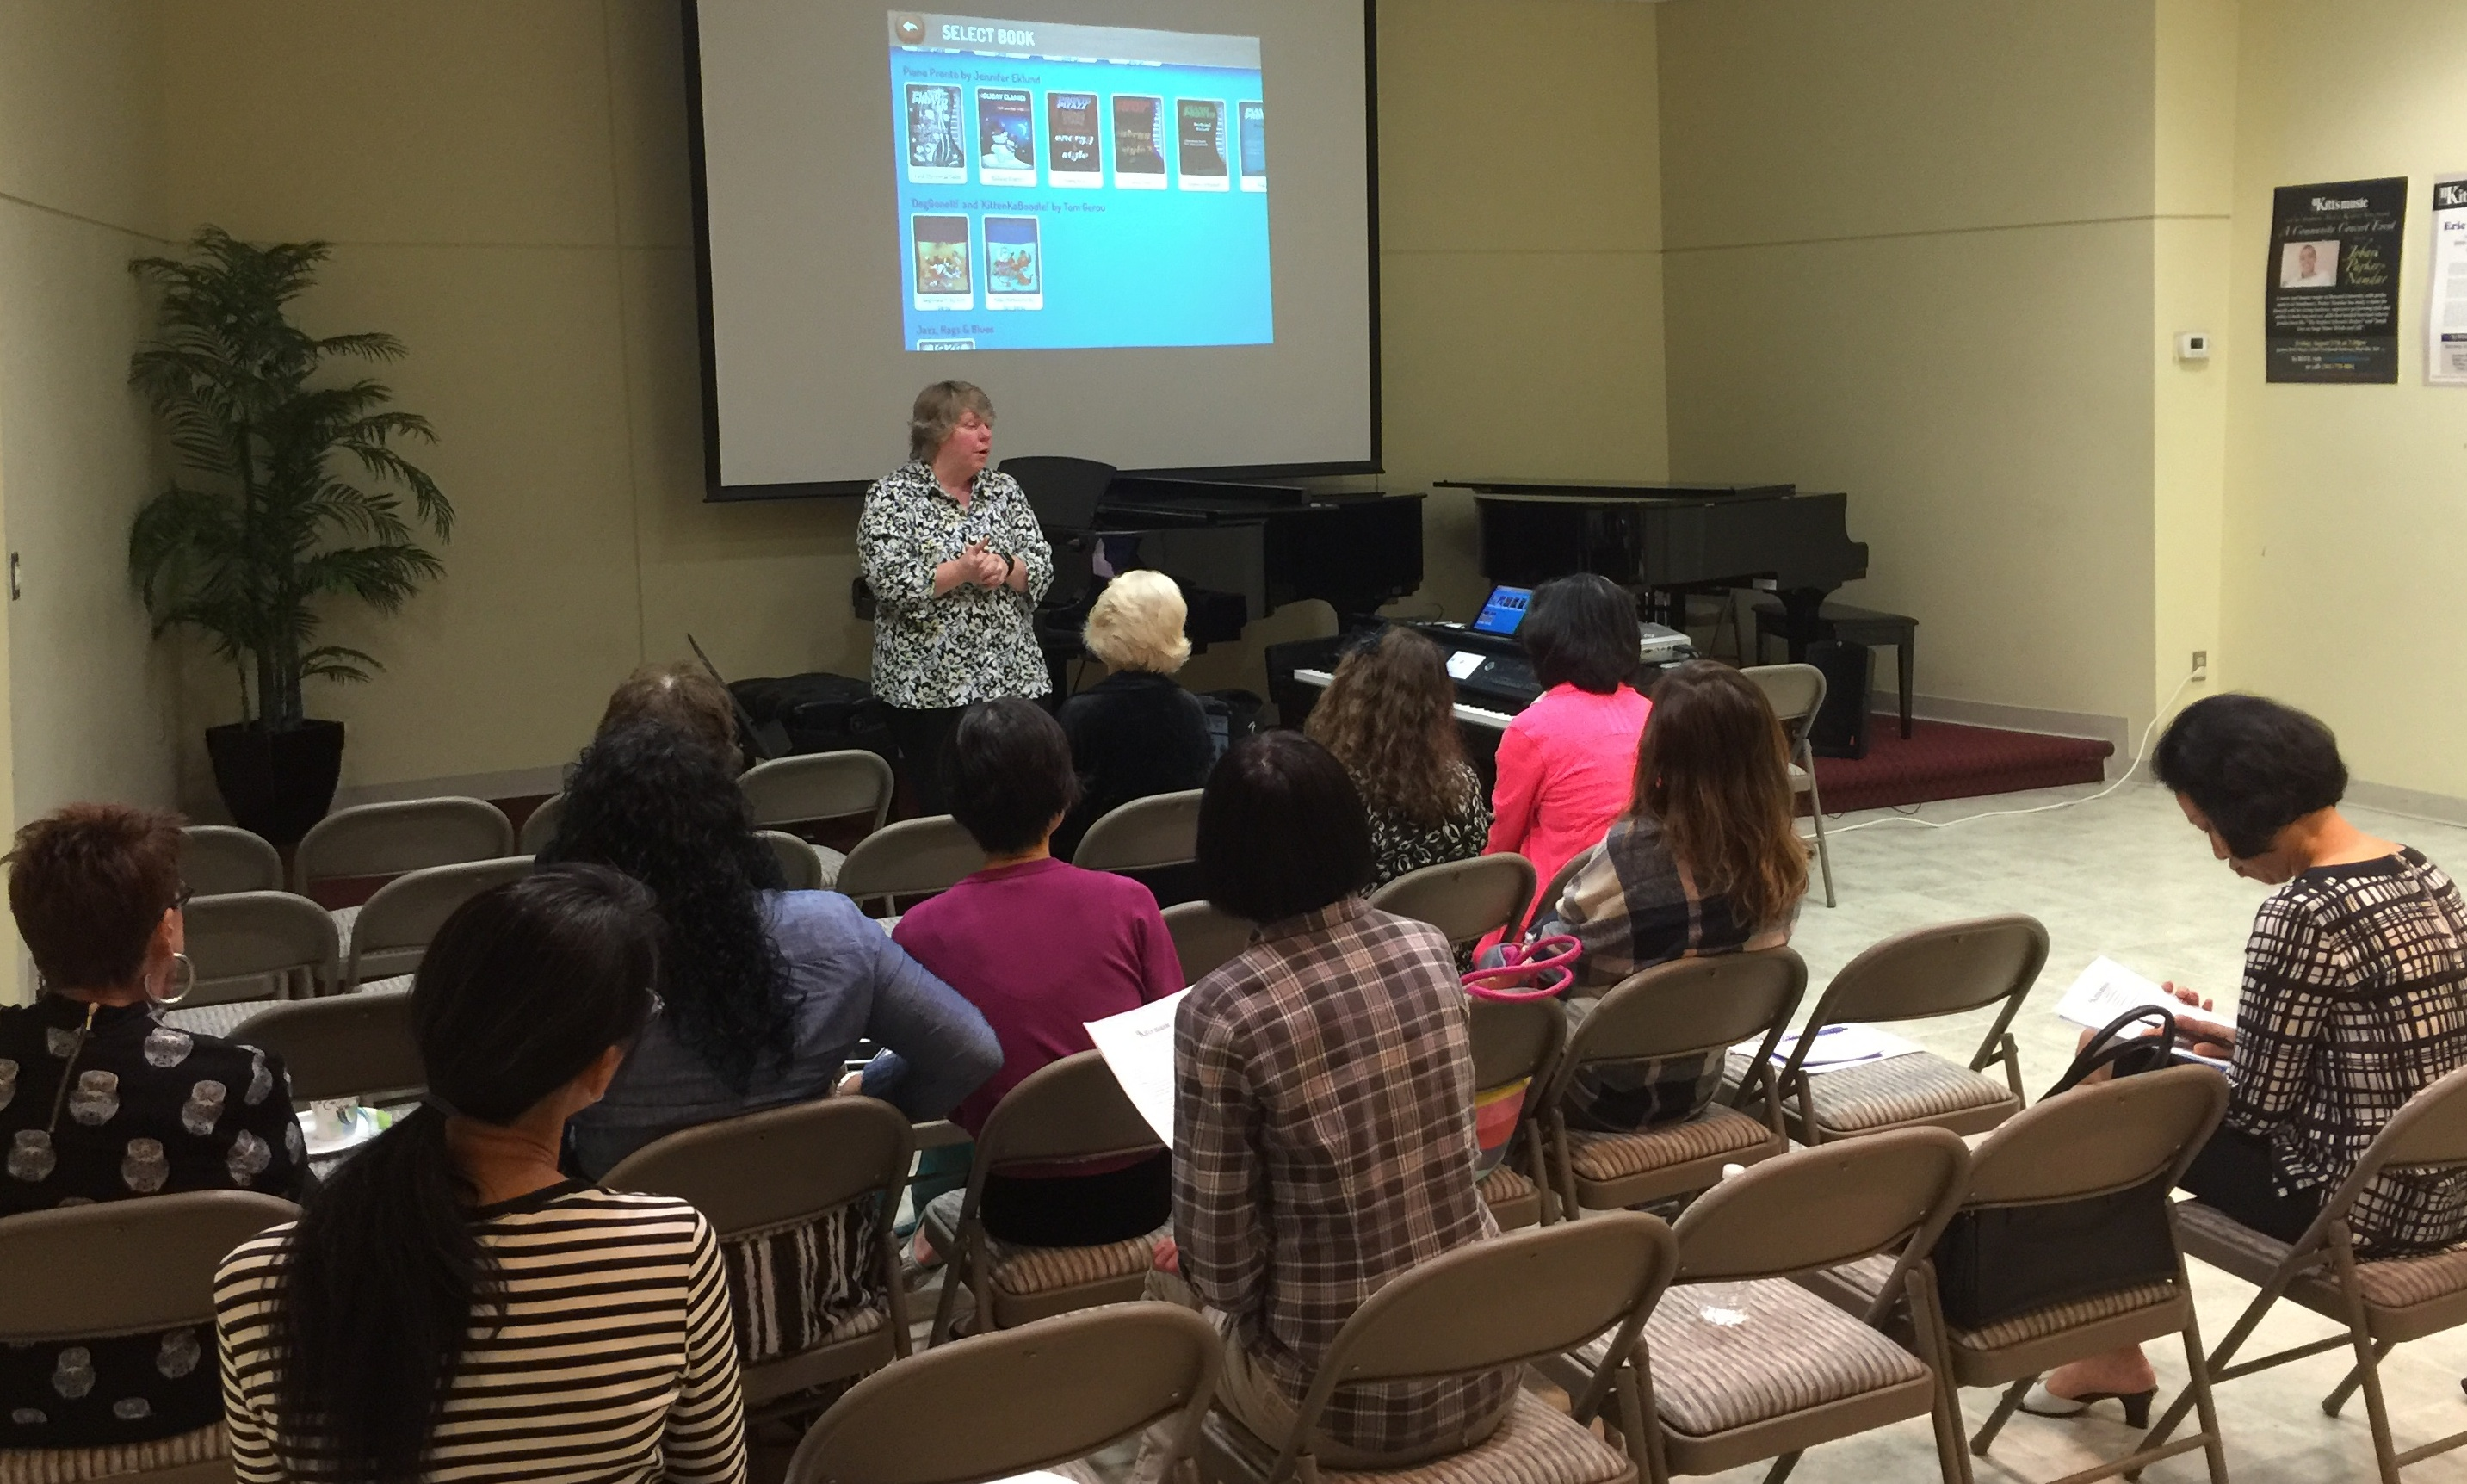 Jordan Kitt's hosts Teacher Workshop on Technology